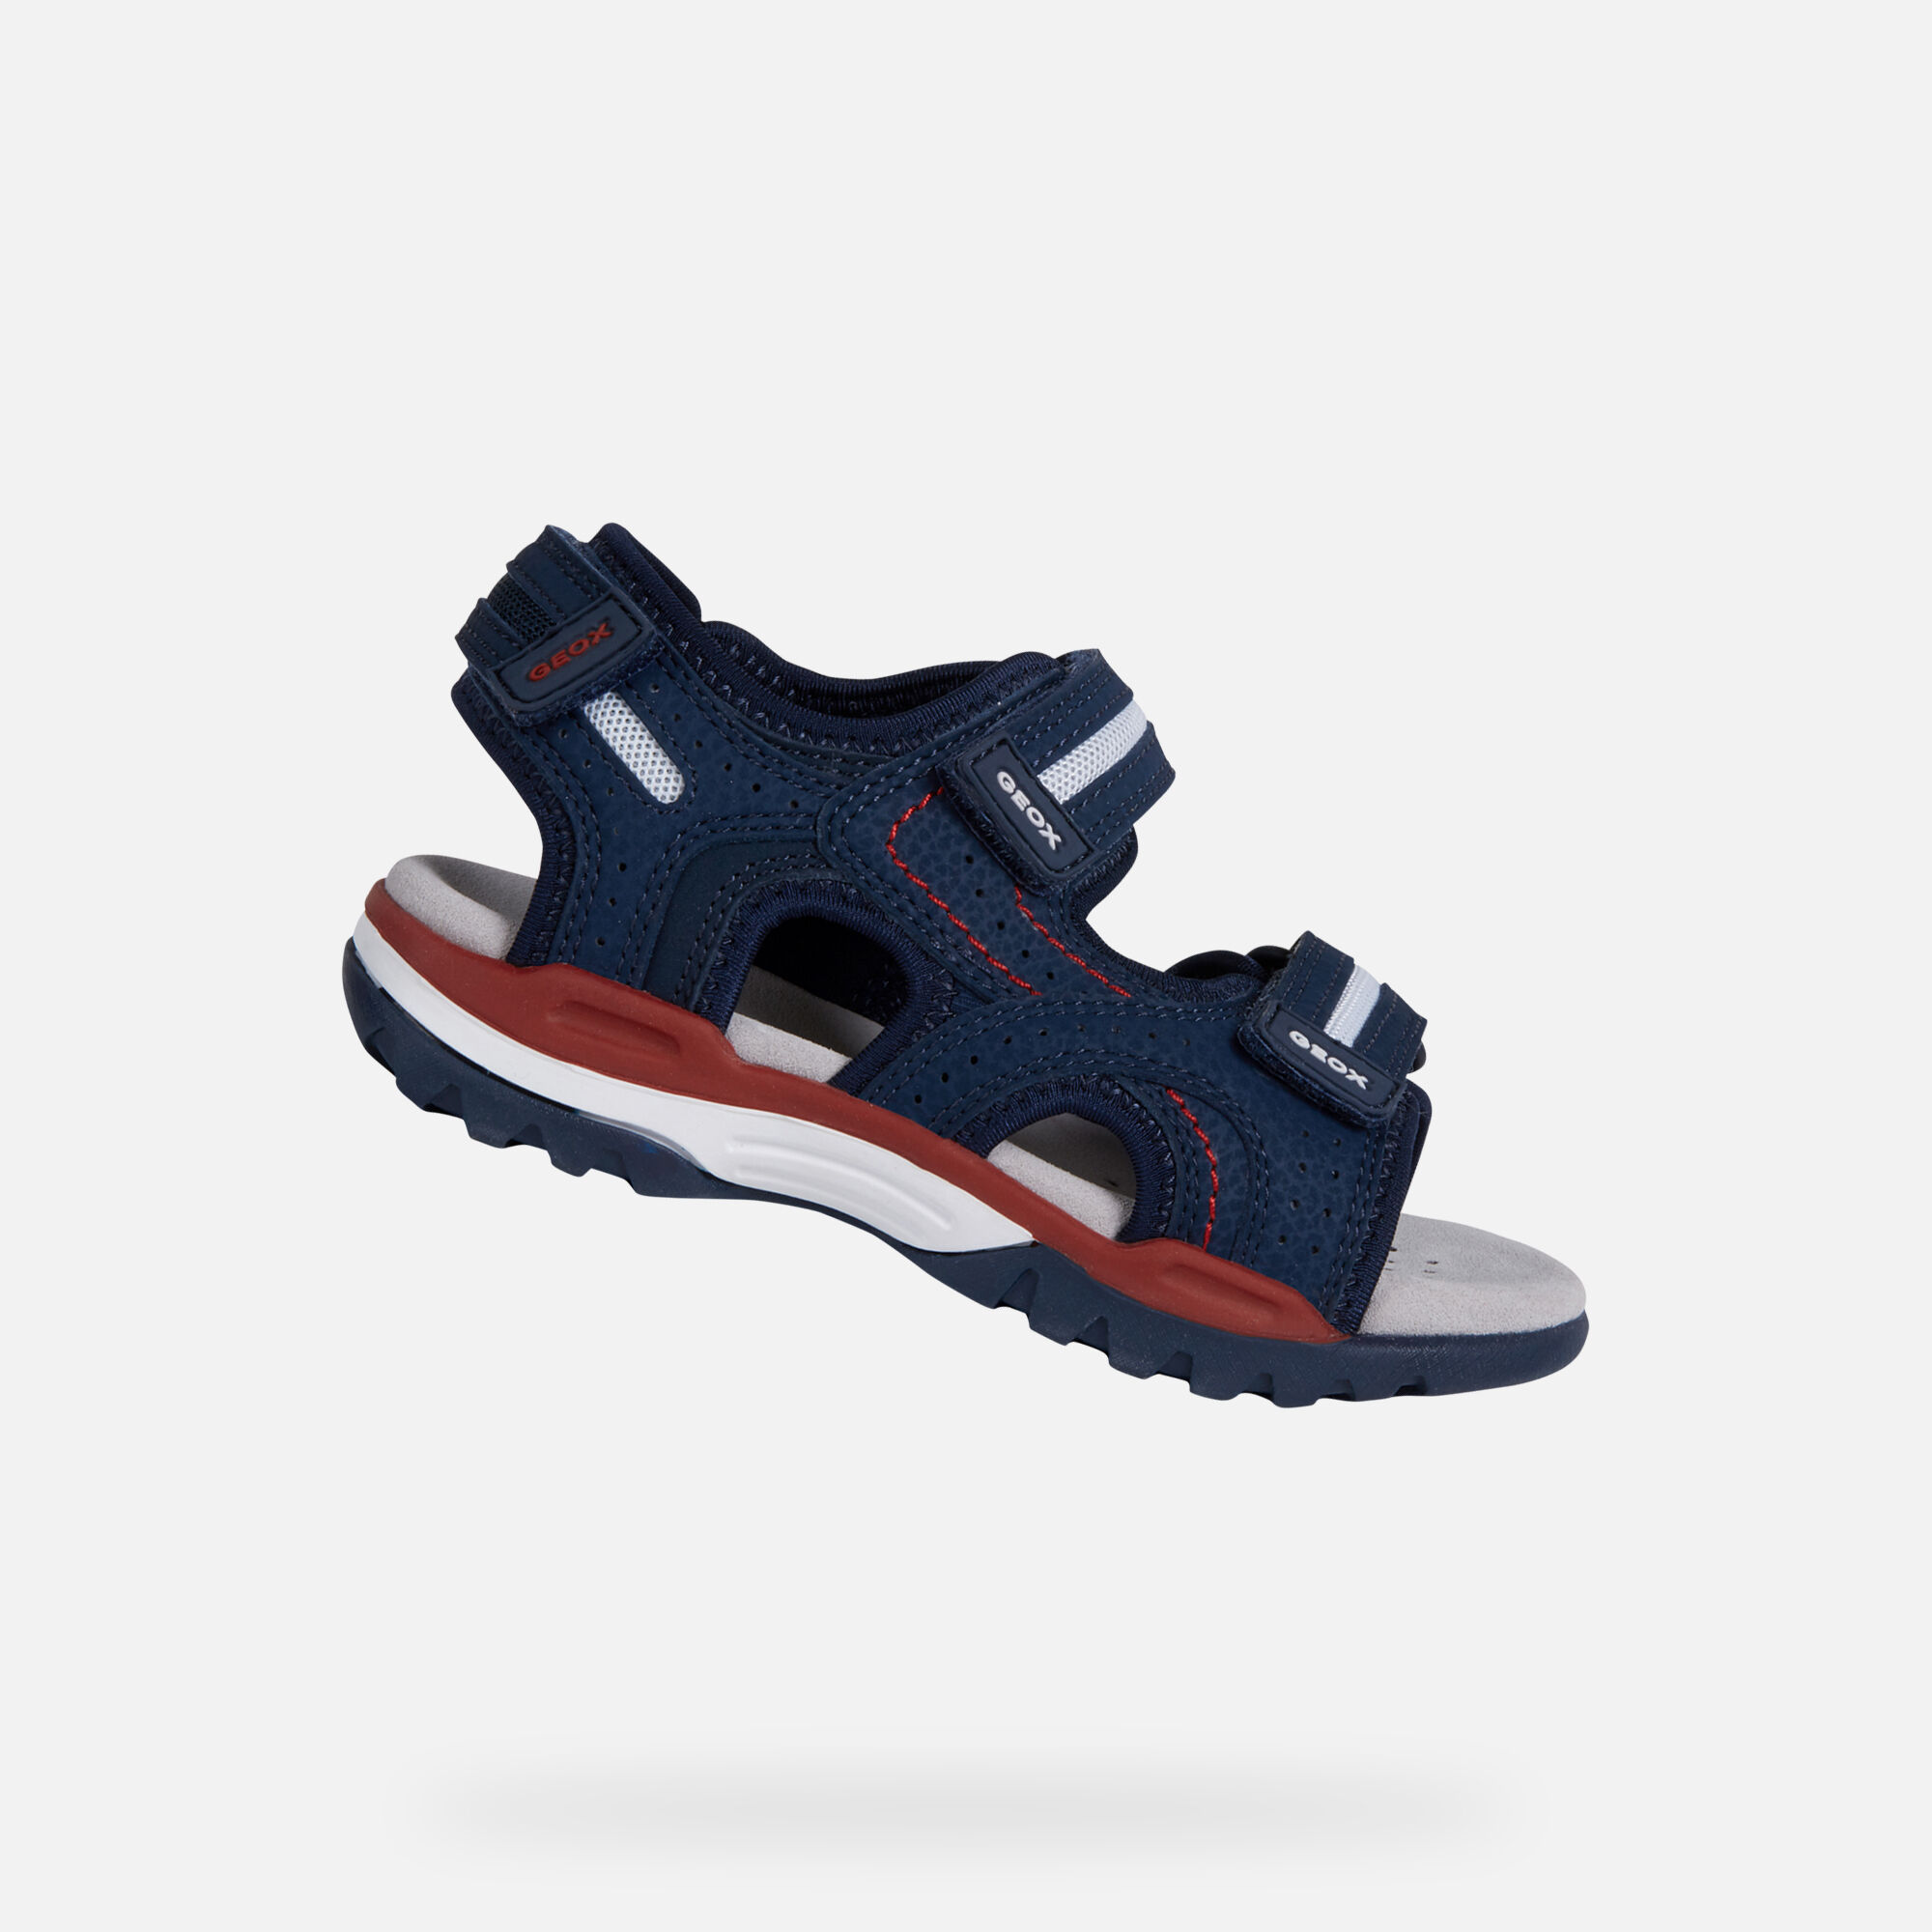 Geox J BOREALIS: Blue Navy and Red Junior Boy Sandals | Geox